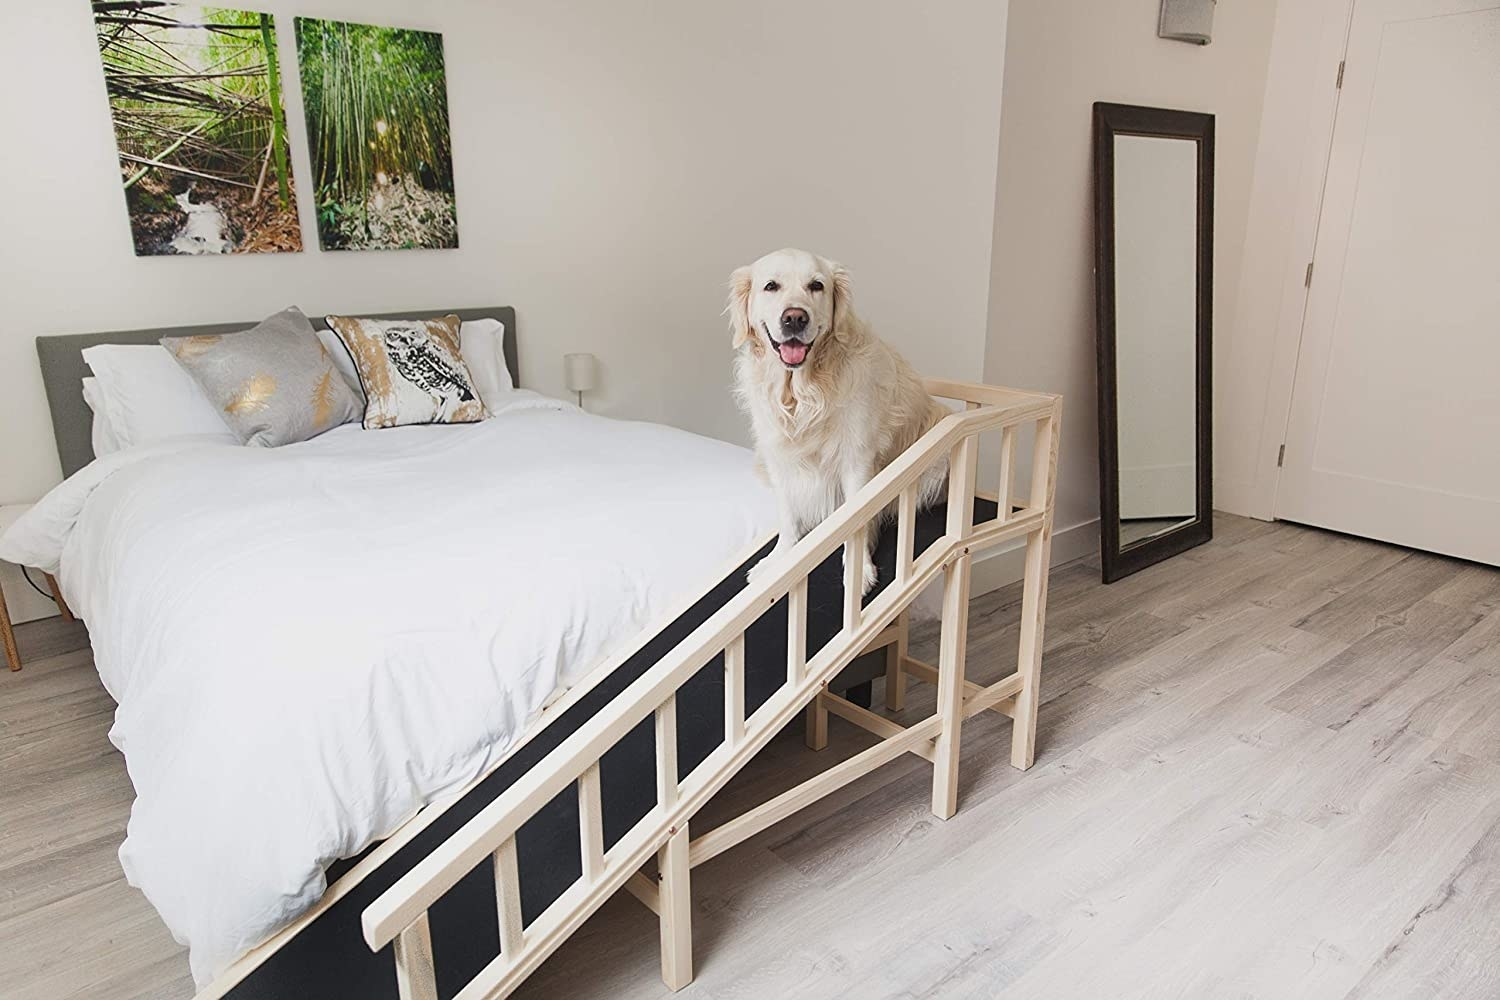 The ramp set up at the foot of a bed, with the rubber walkway slowly rising to bed height, with a railing on the far side of the ramp to prevent falls